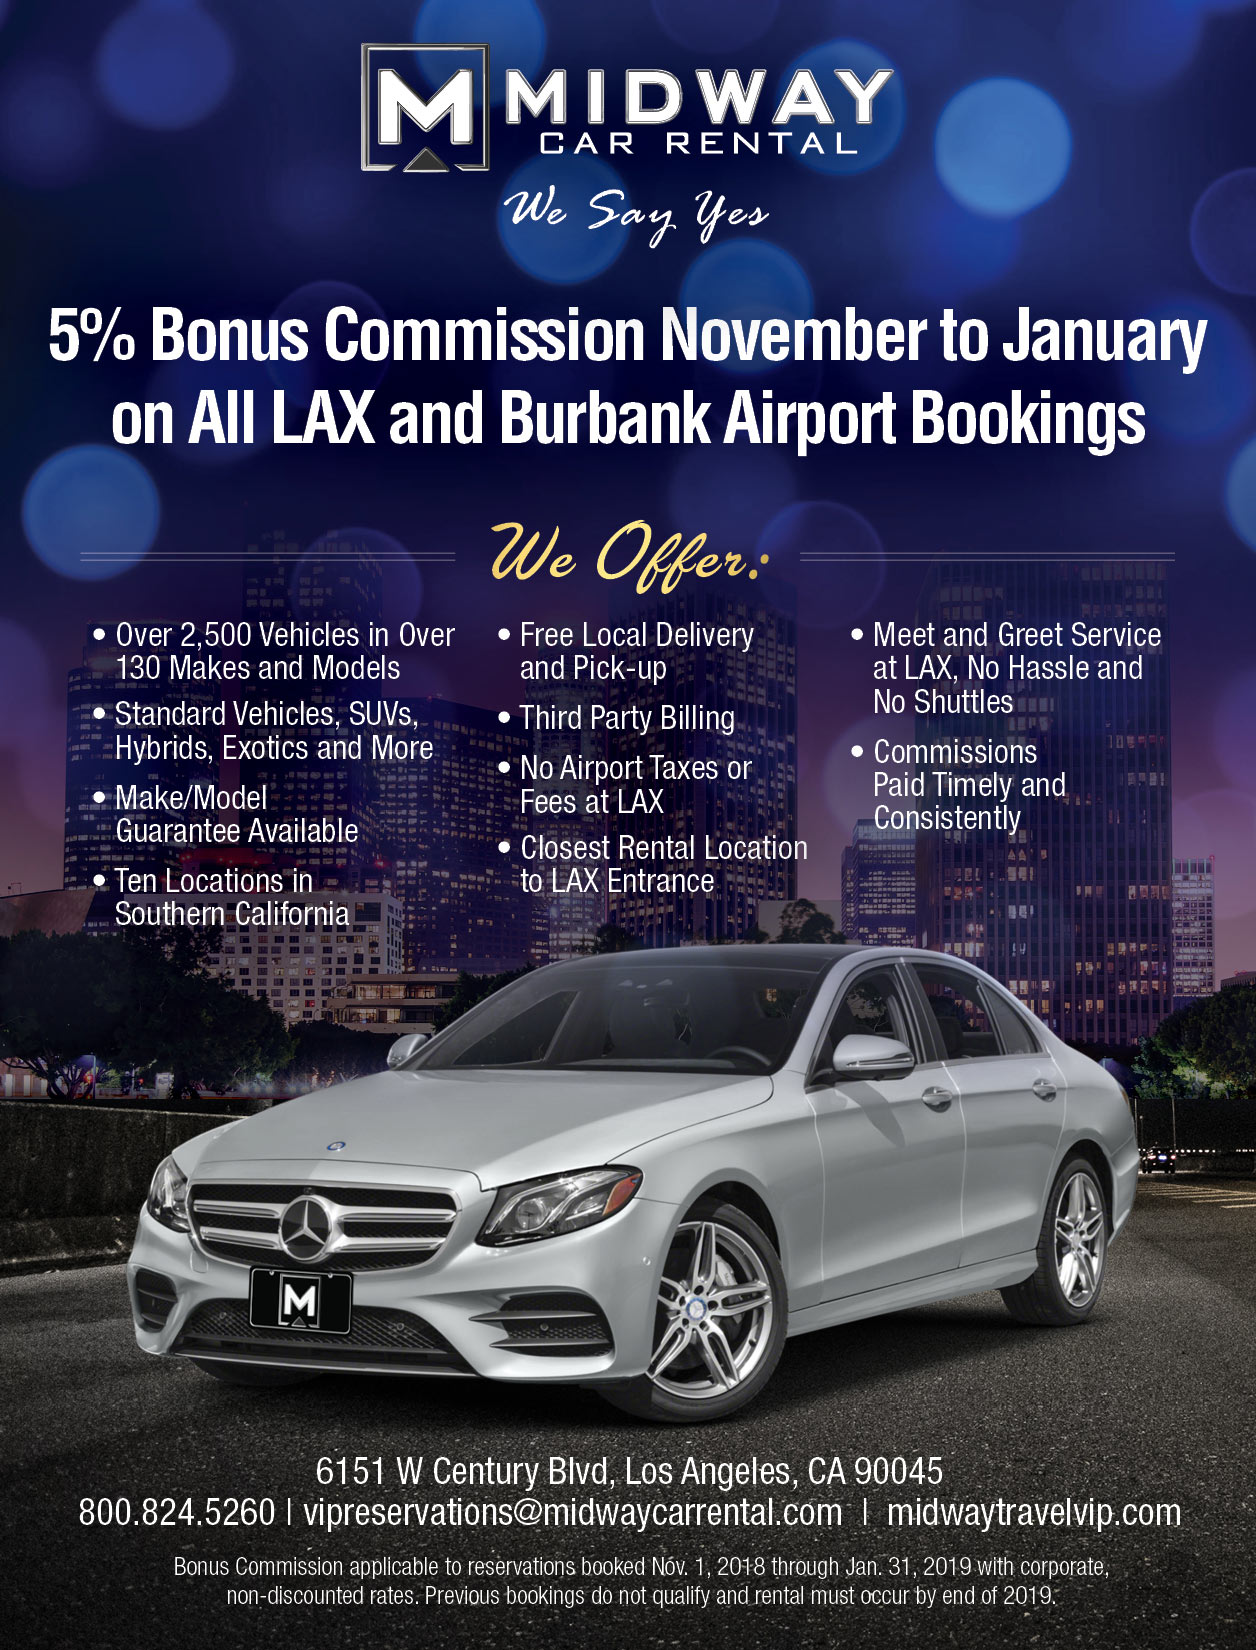 Travel Agent Special Midway Car Rental